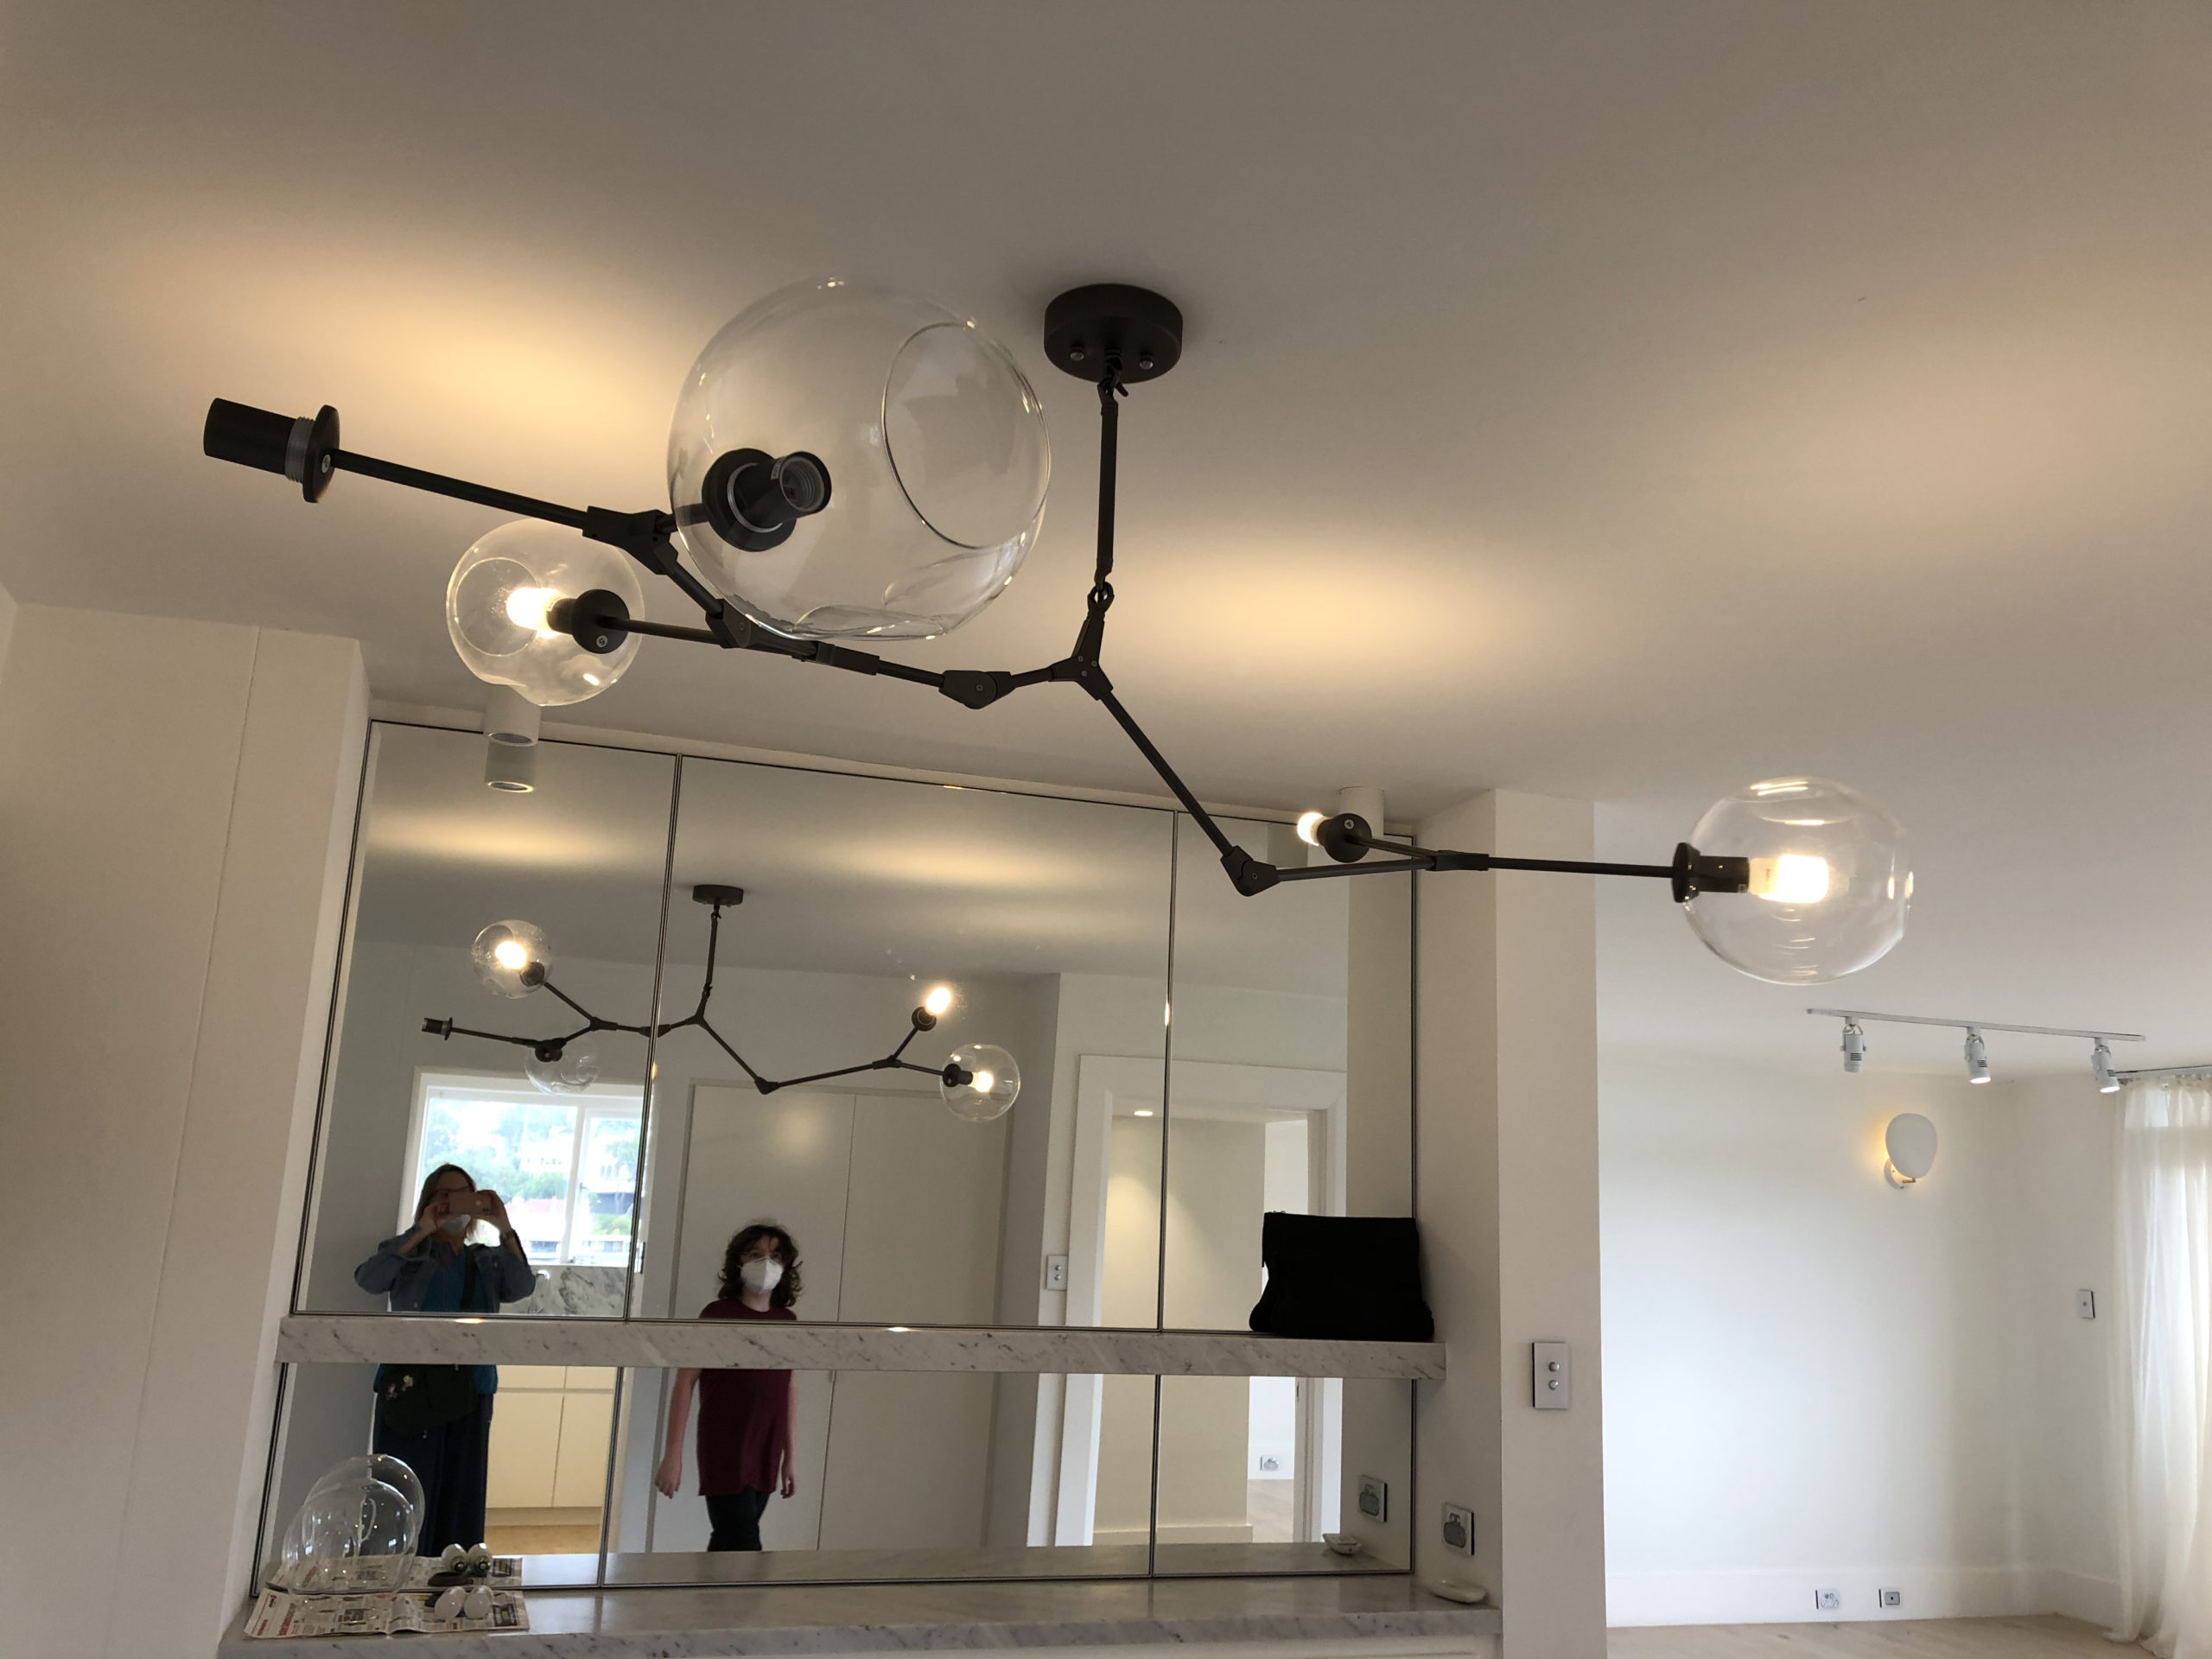 Deirdré and Mitchell reflected in a mirror, with a large weird light fixture overhead